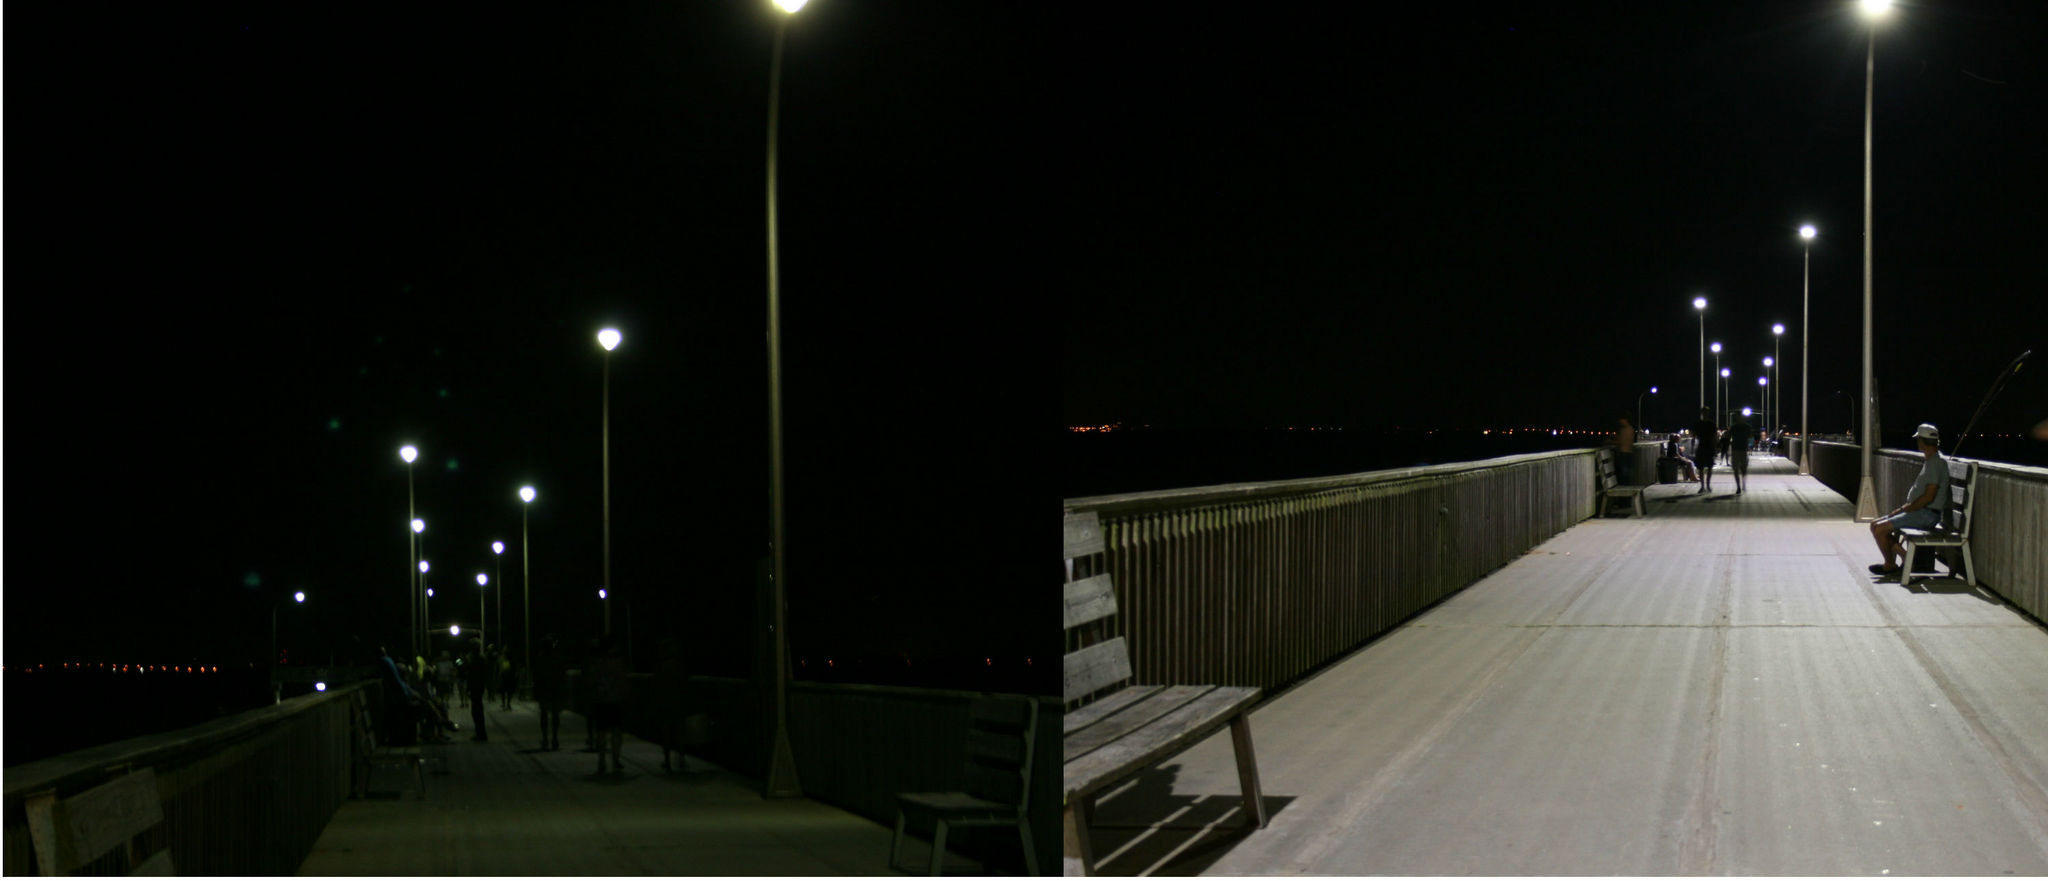 fairhope-pier-lighting-before-and-after-ae63a3748c5c6a8d